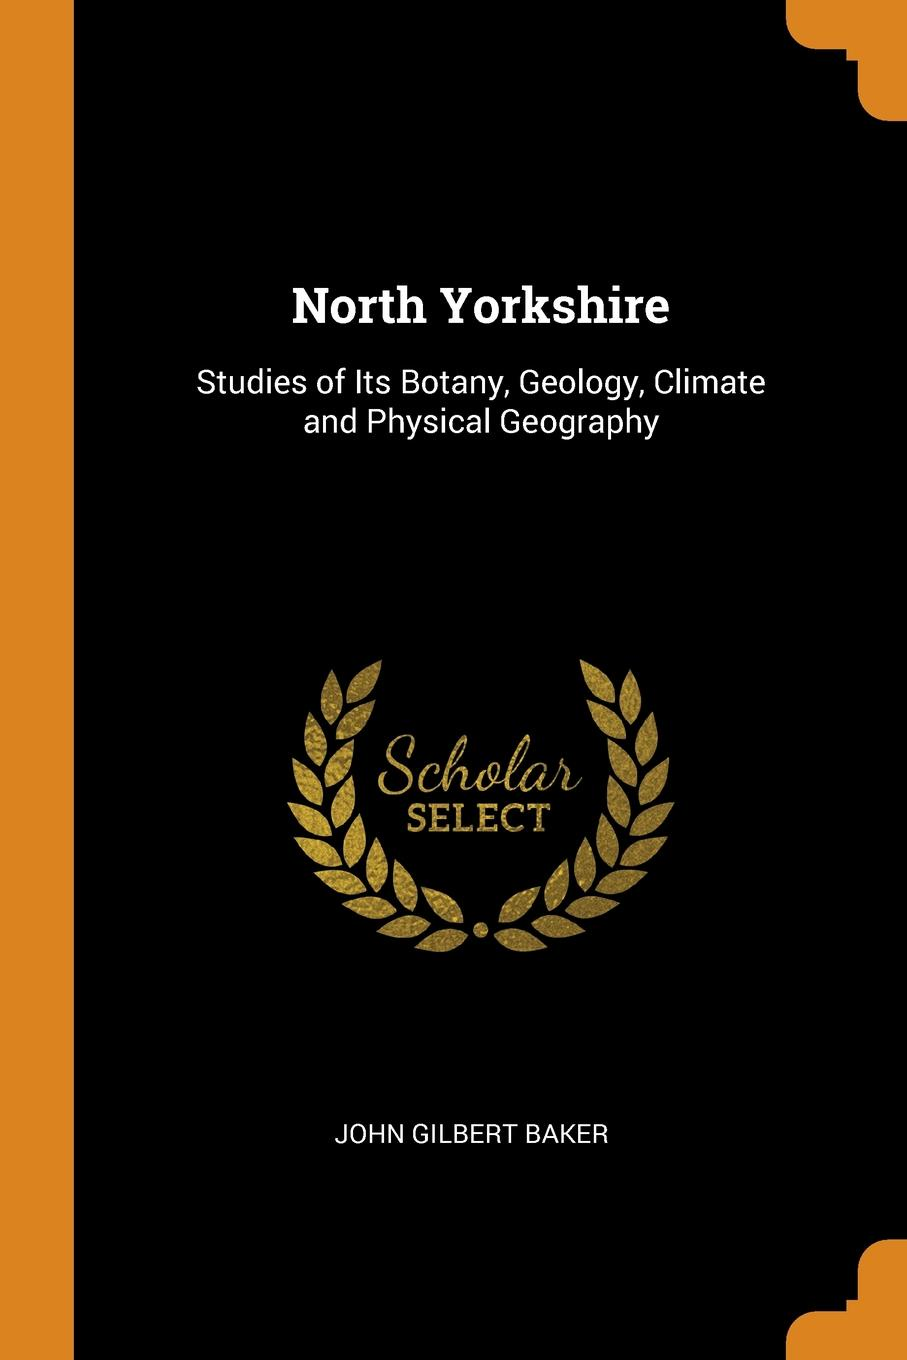 North Yorkshire. Studies of Its Botany, Geology, Climate and Physical Geography. John Gilbert Baker